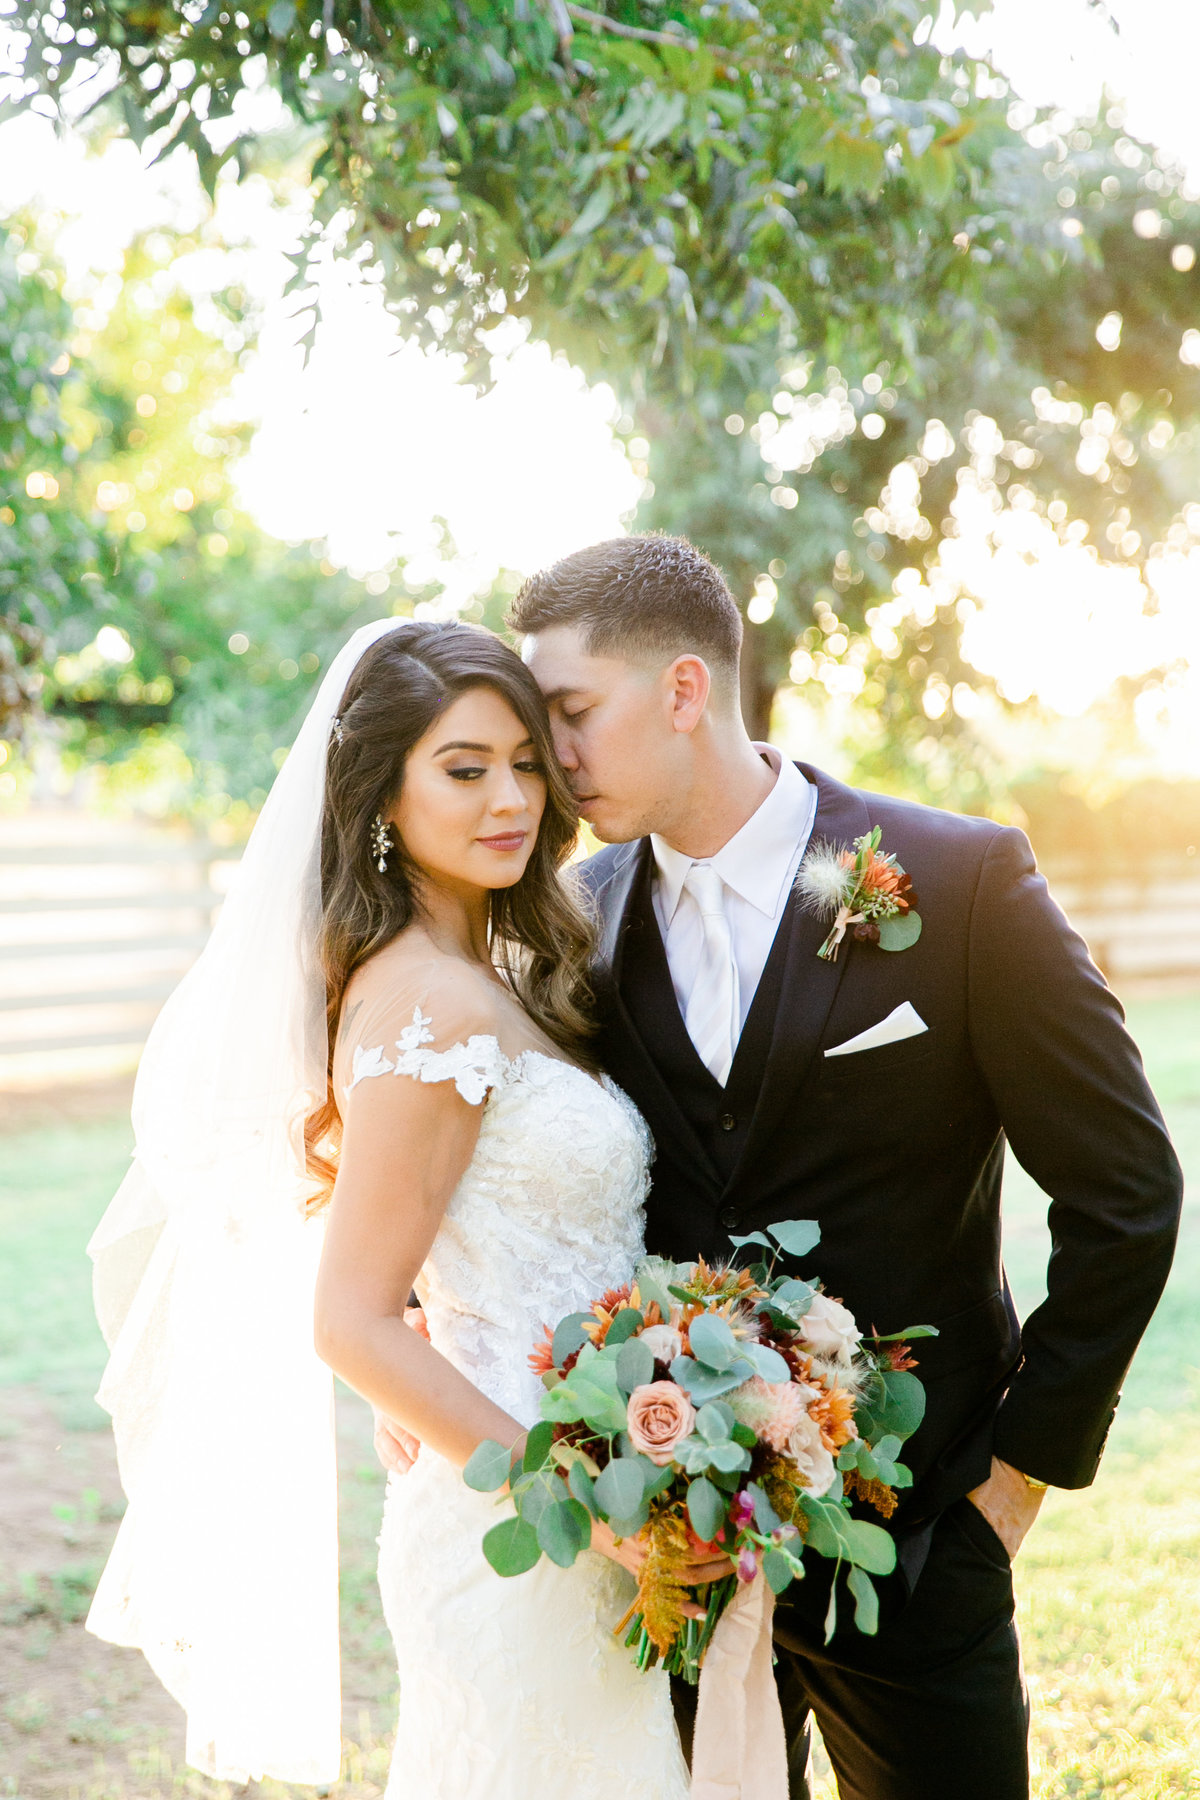 Karlie Colleen Photography - Phoenix Arizona - Farm At South Mountain Venue - Vanessa & Robert-557